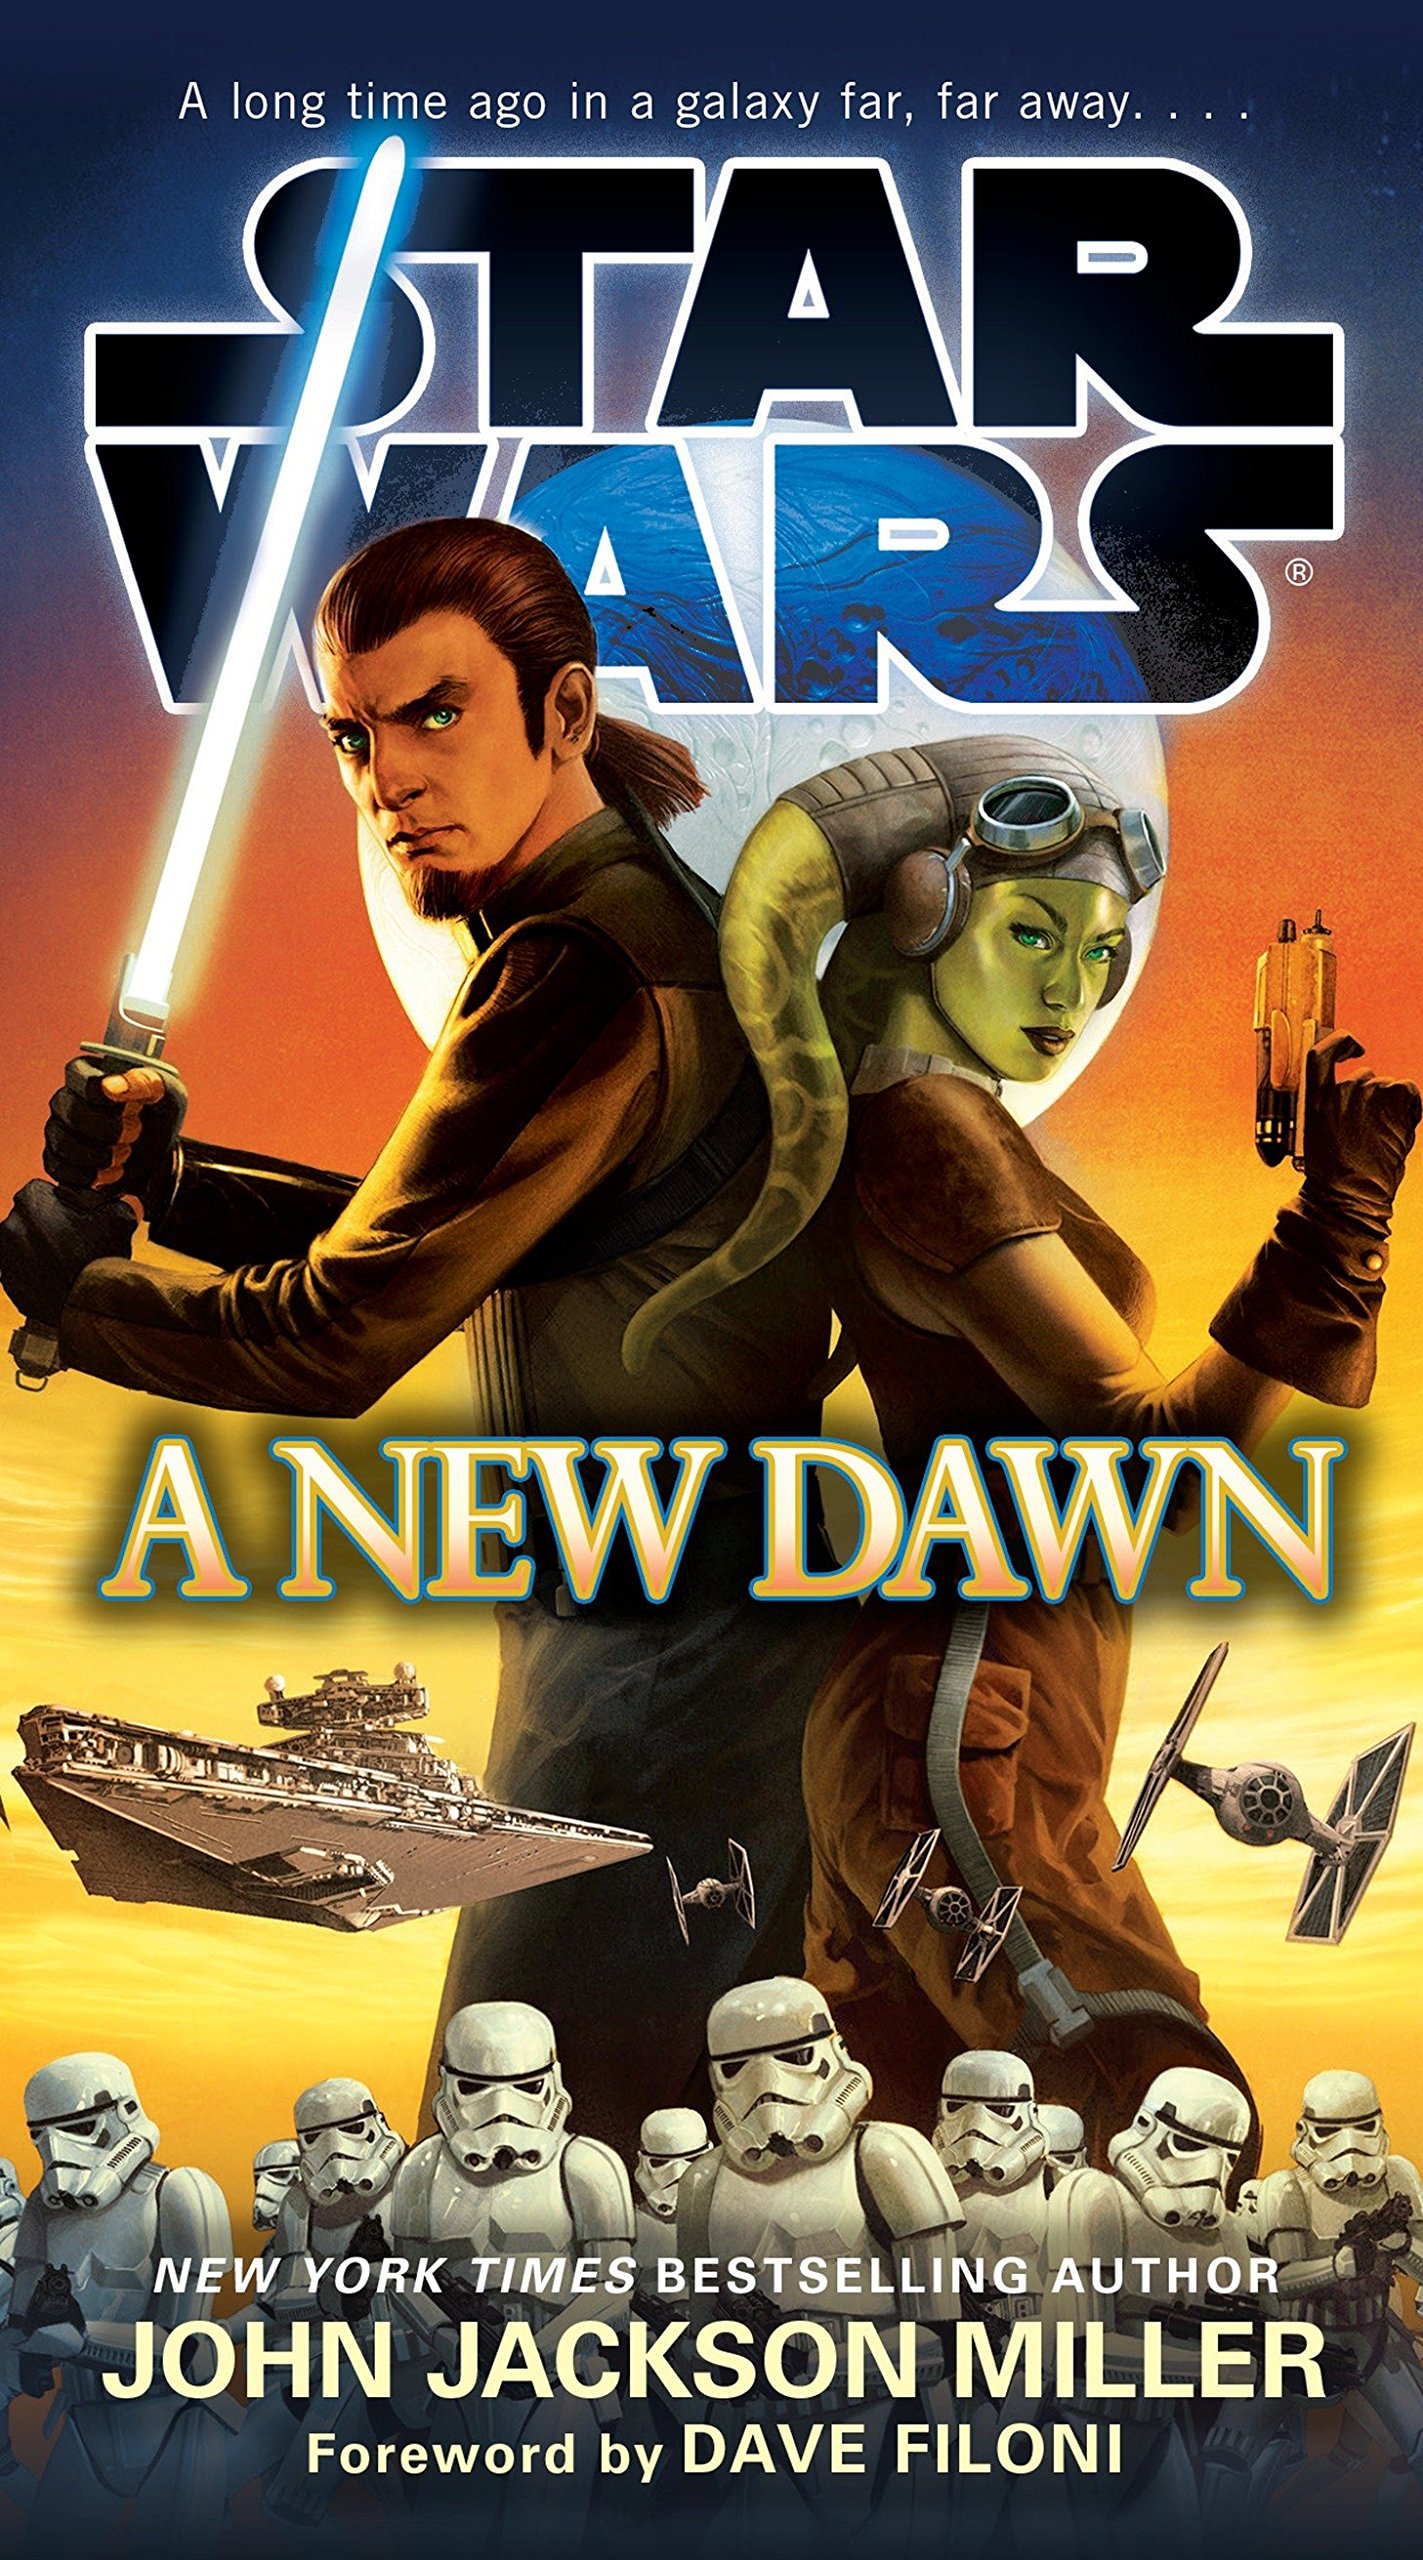 star wars books series